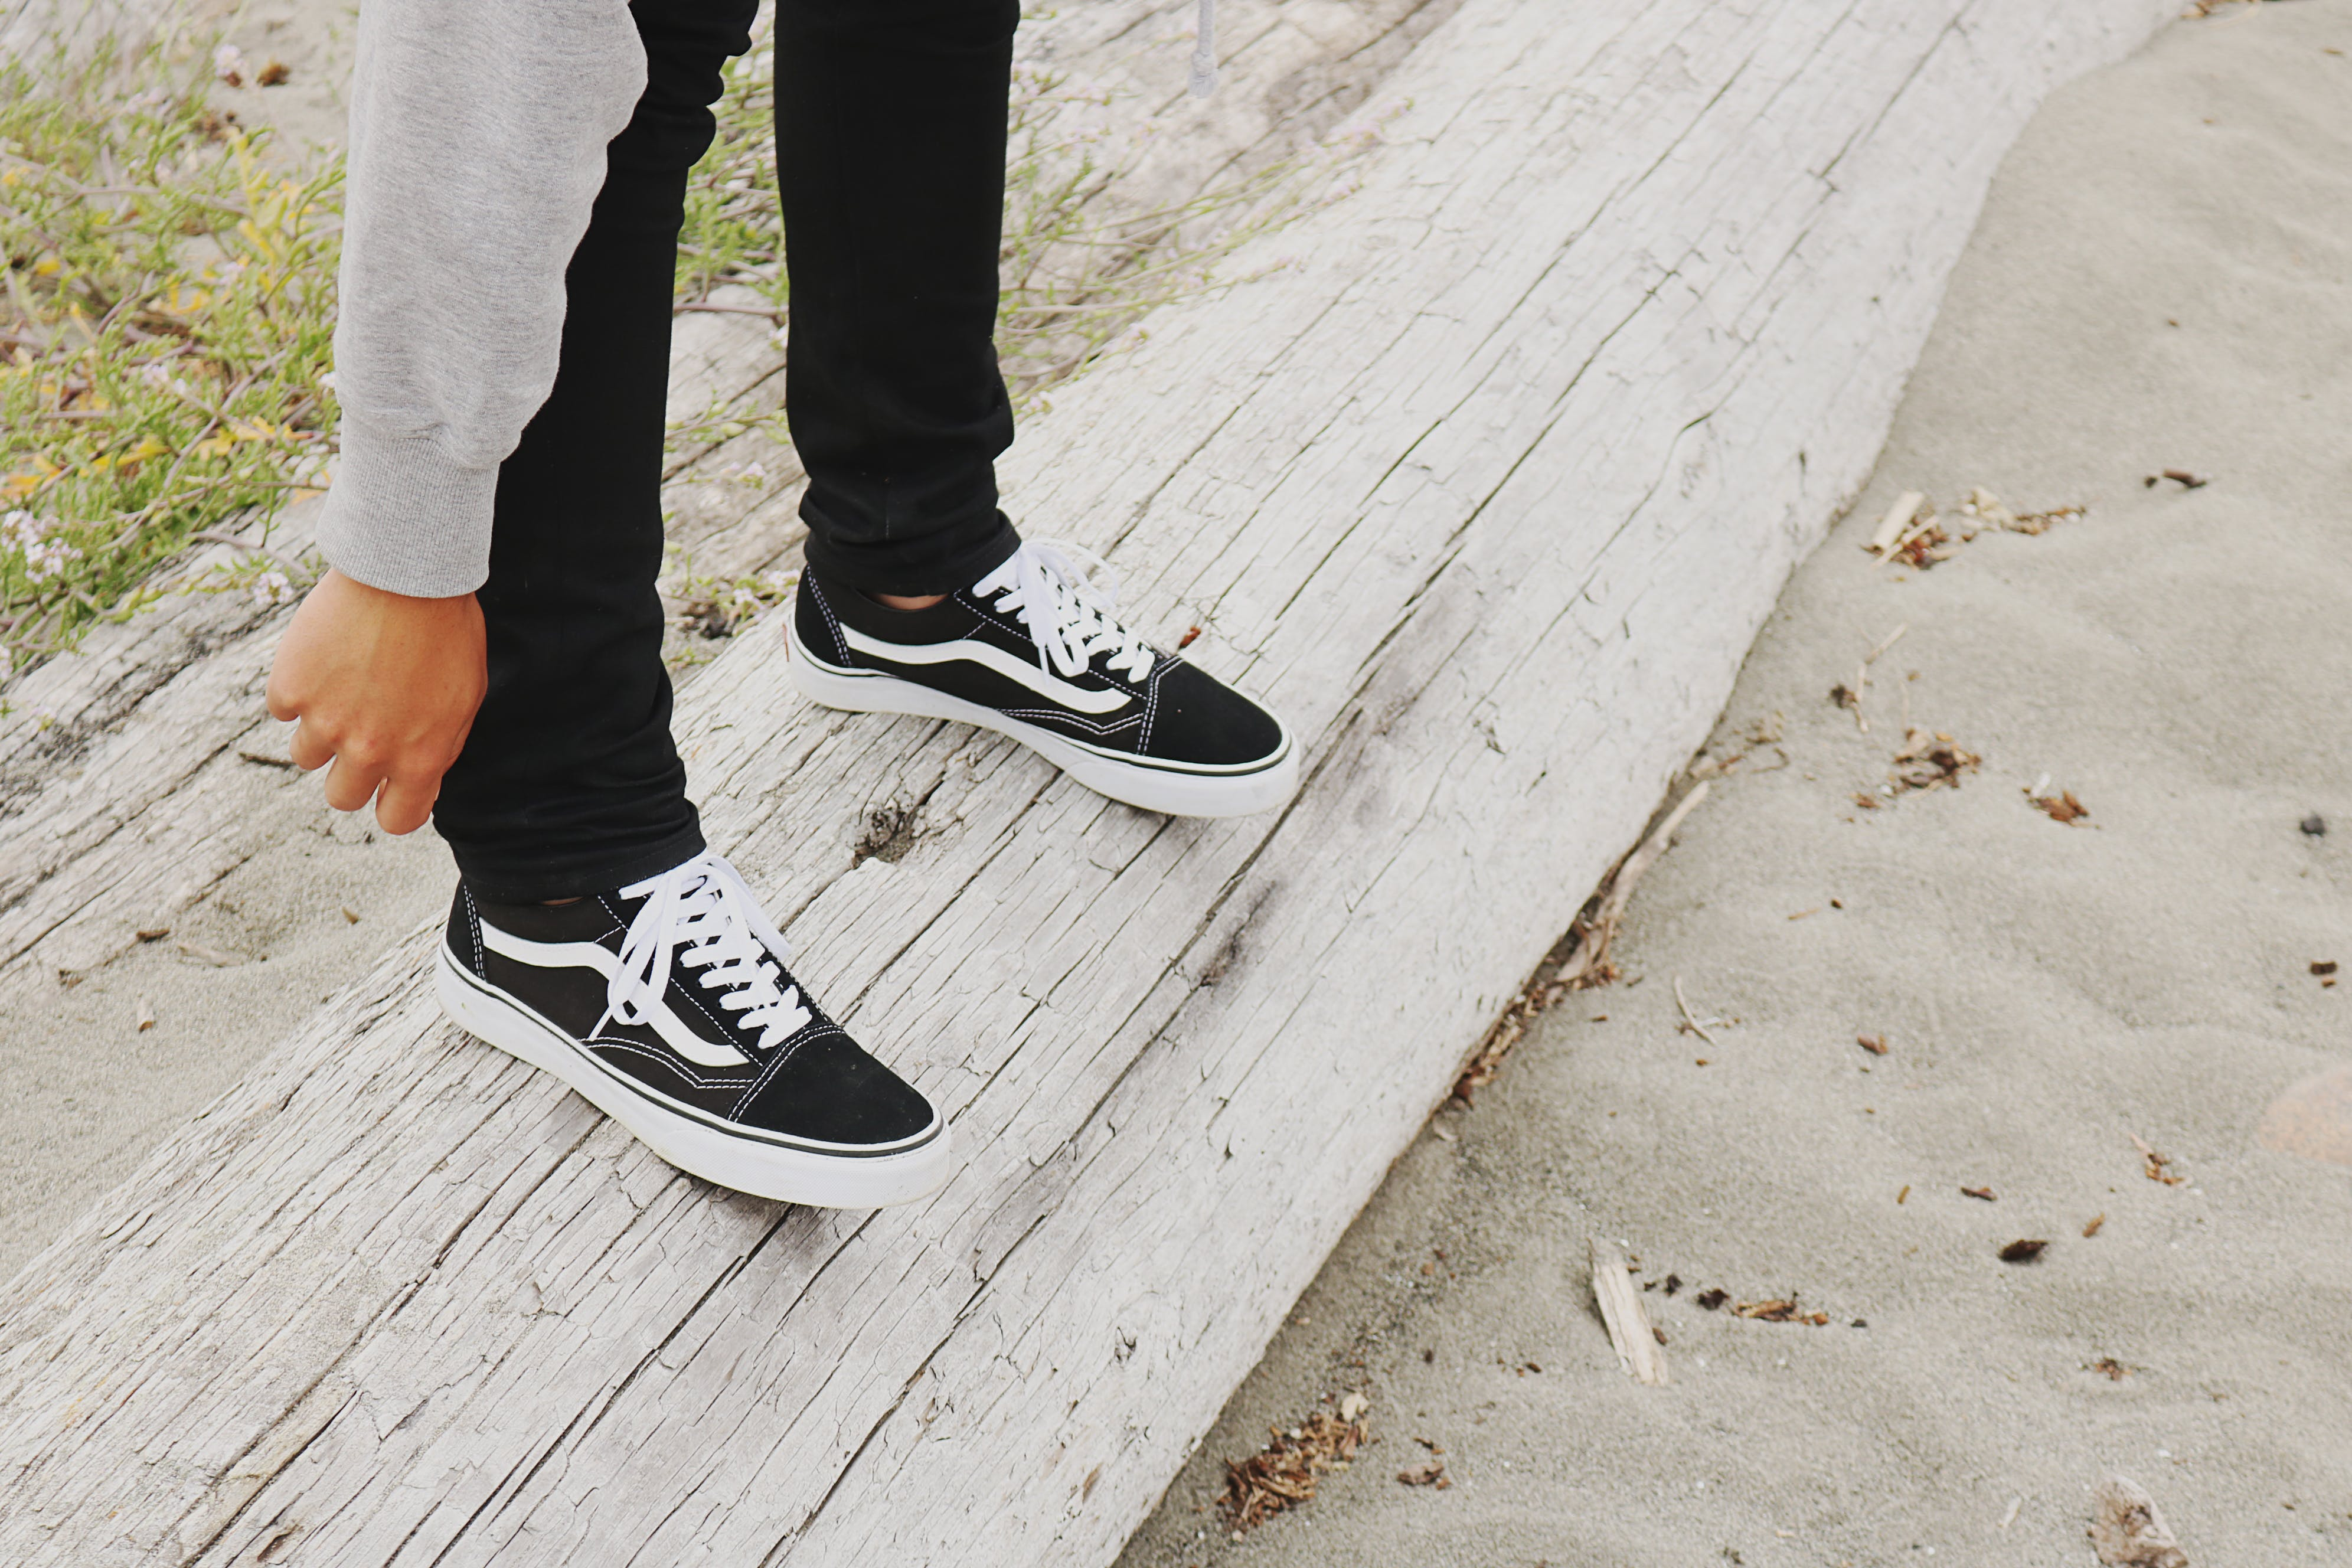 Person Wearing Black Vans Low-top Sneakers